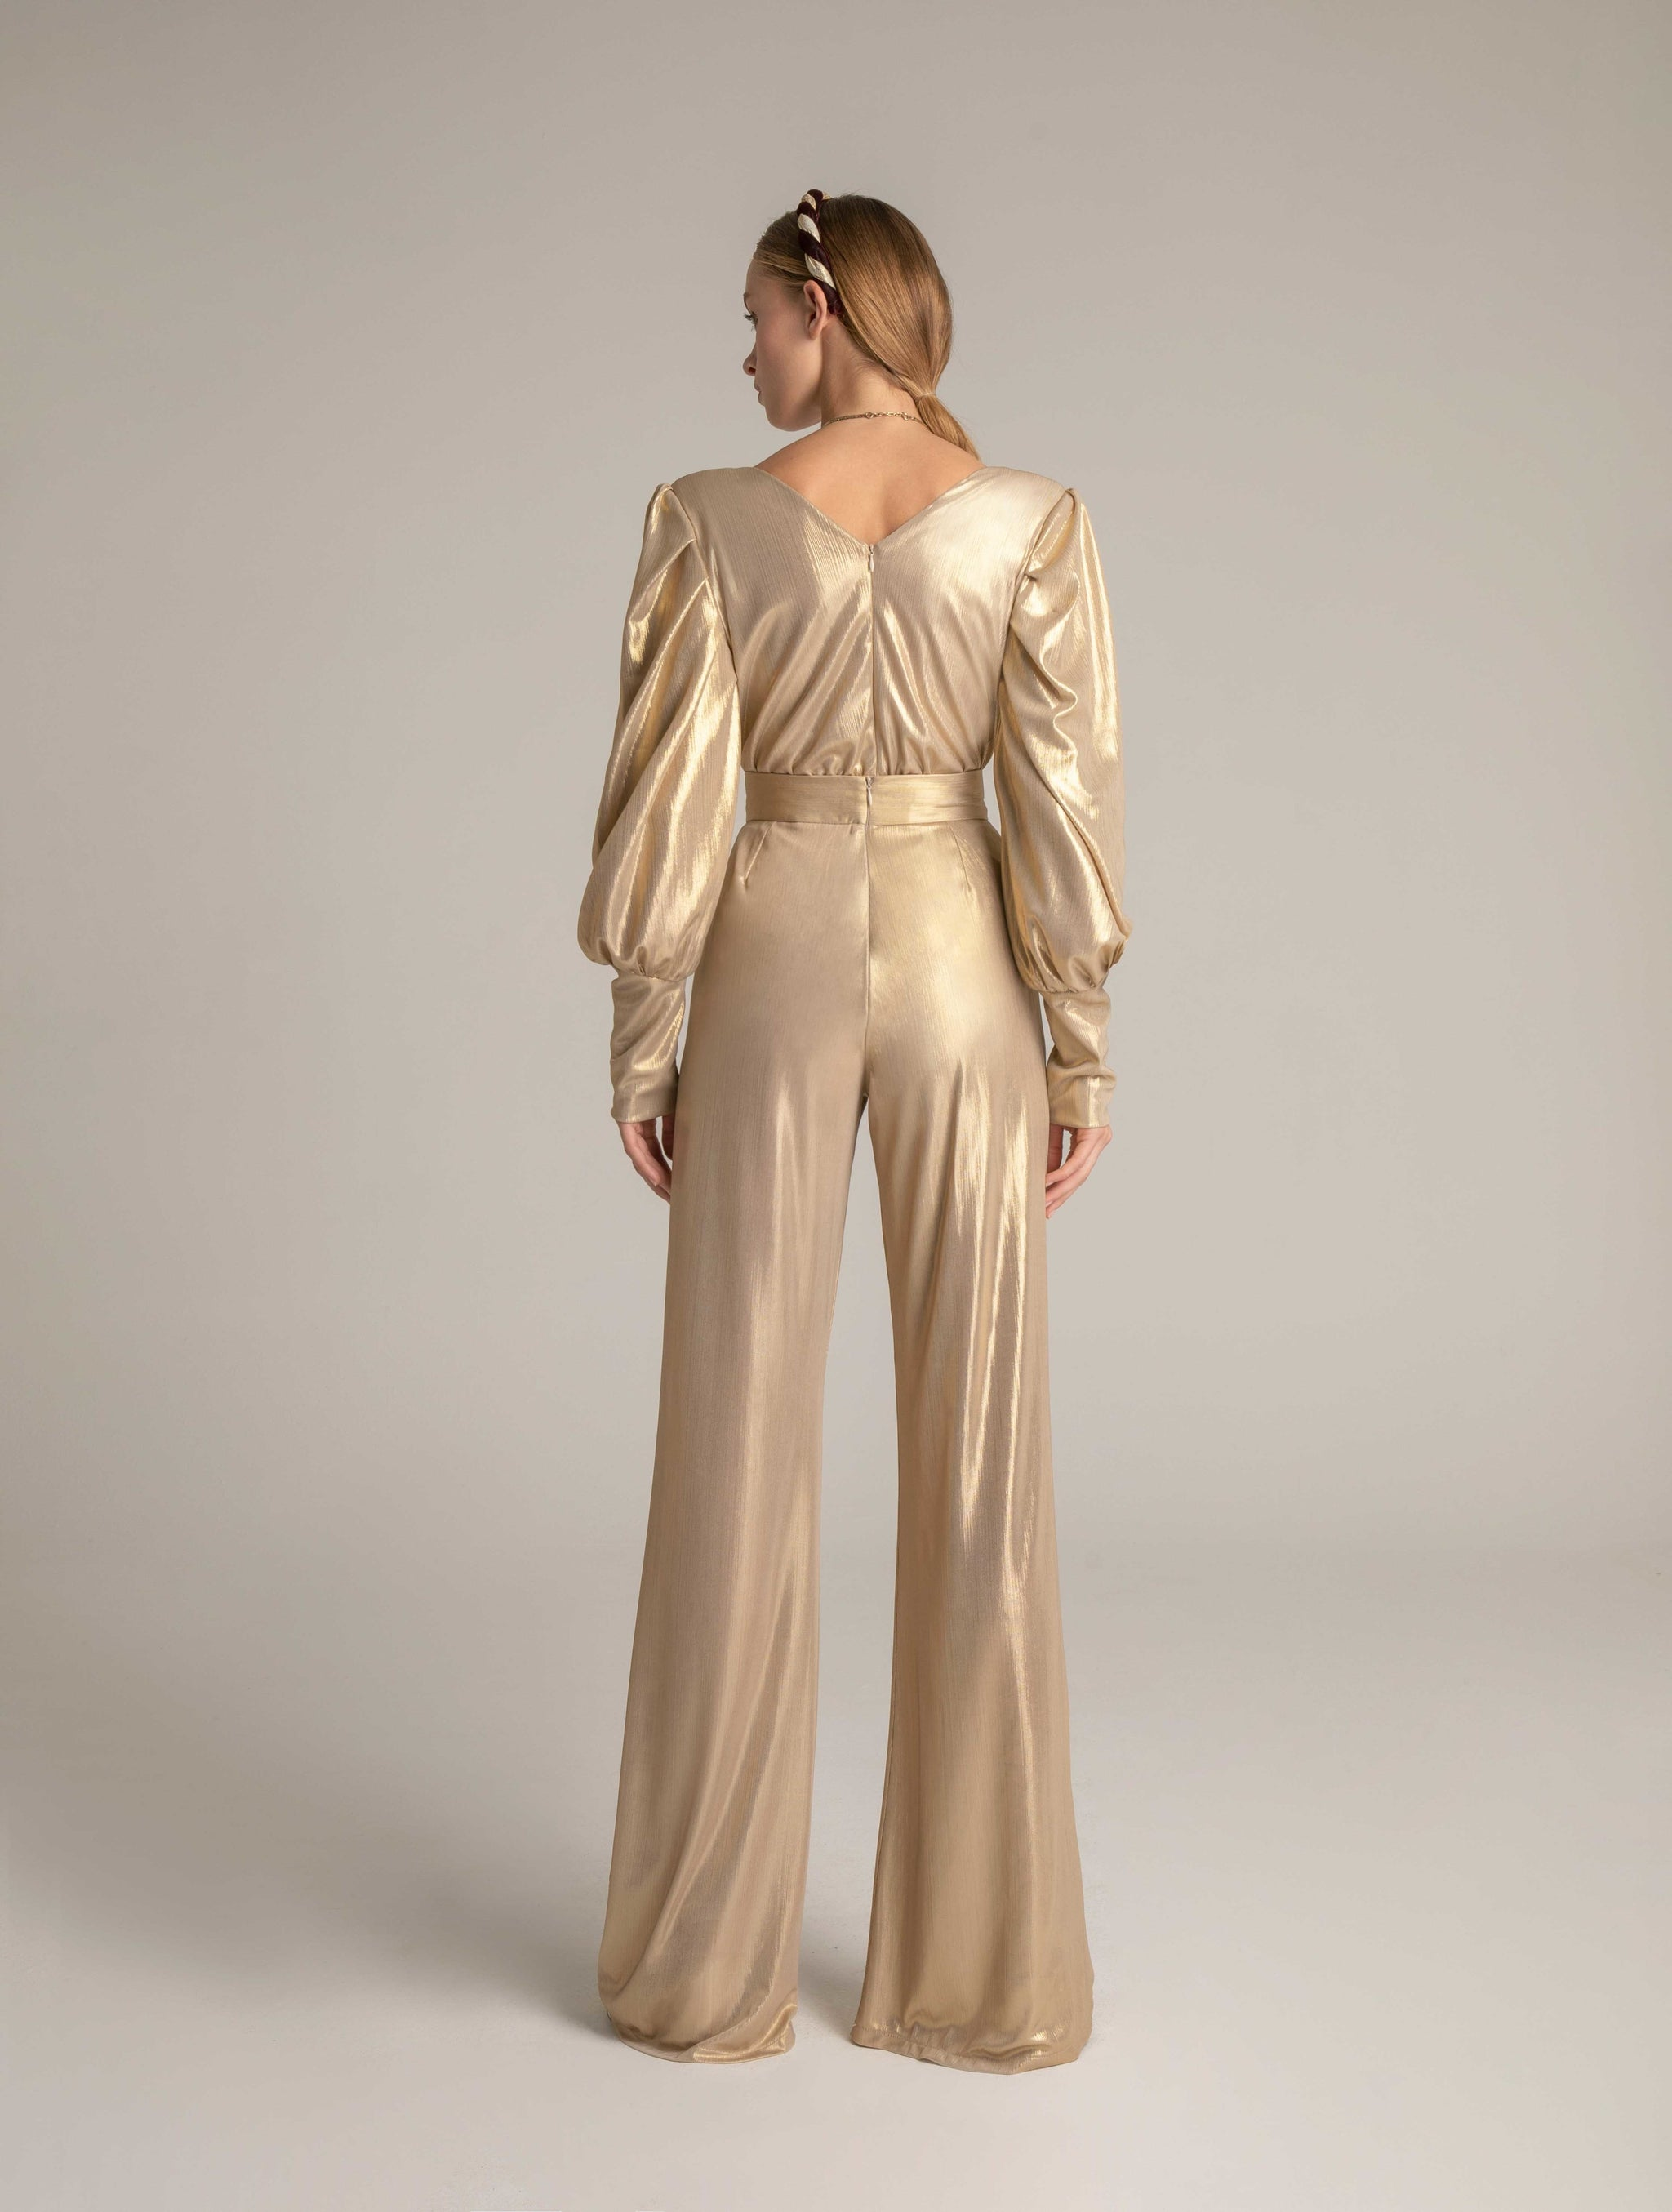 RAZIA BODY IN GOLD